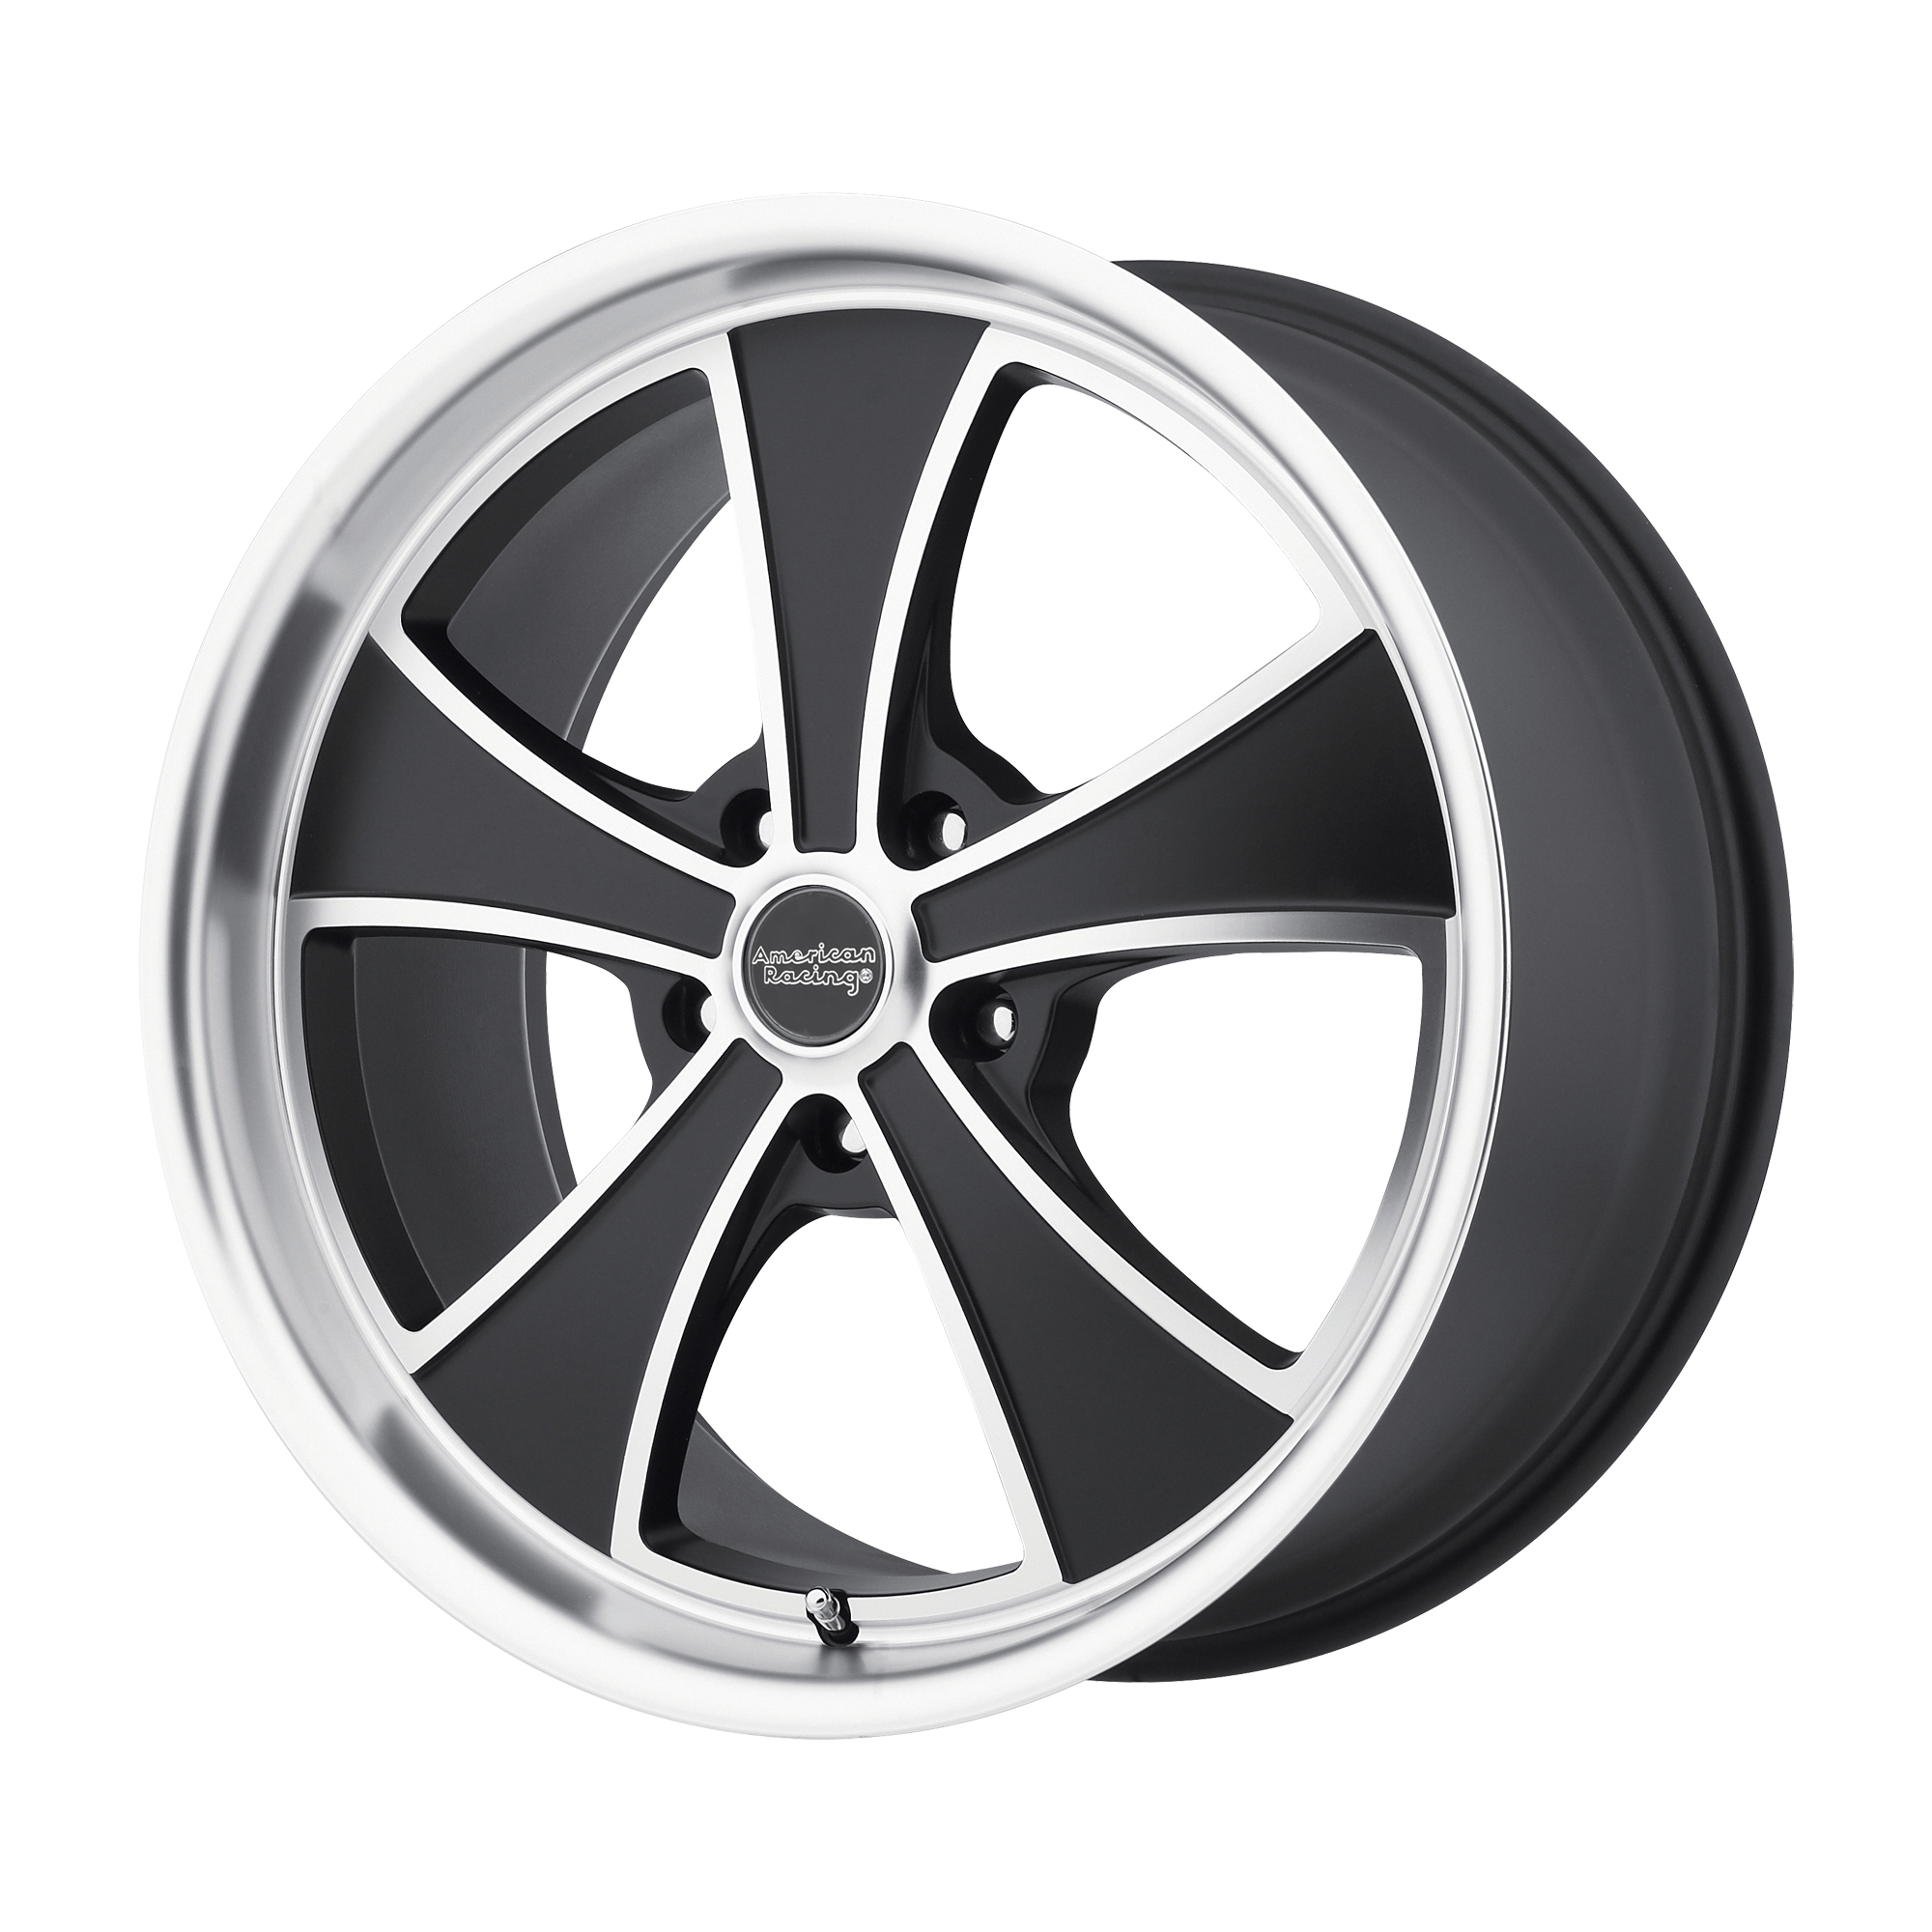 American Racing Wheels VN807 MACH 5 Black